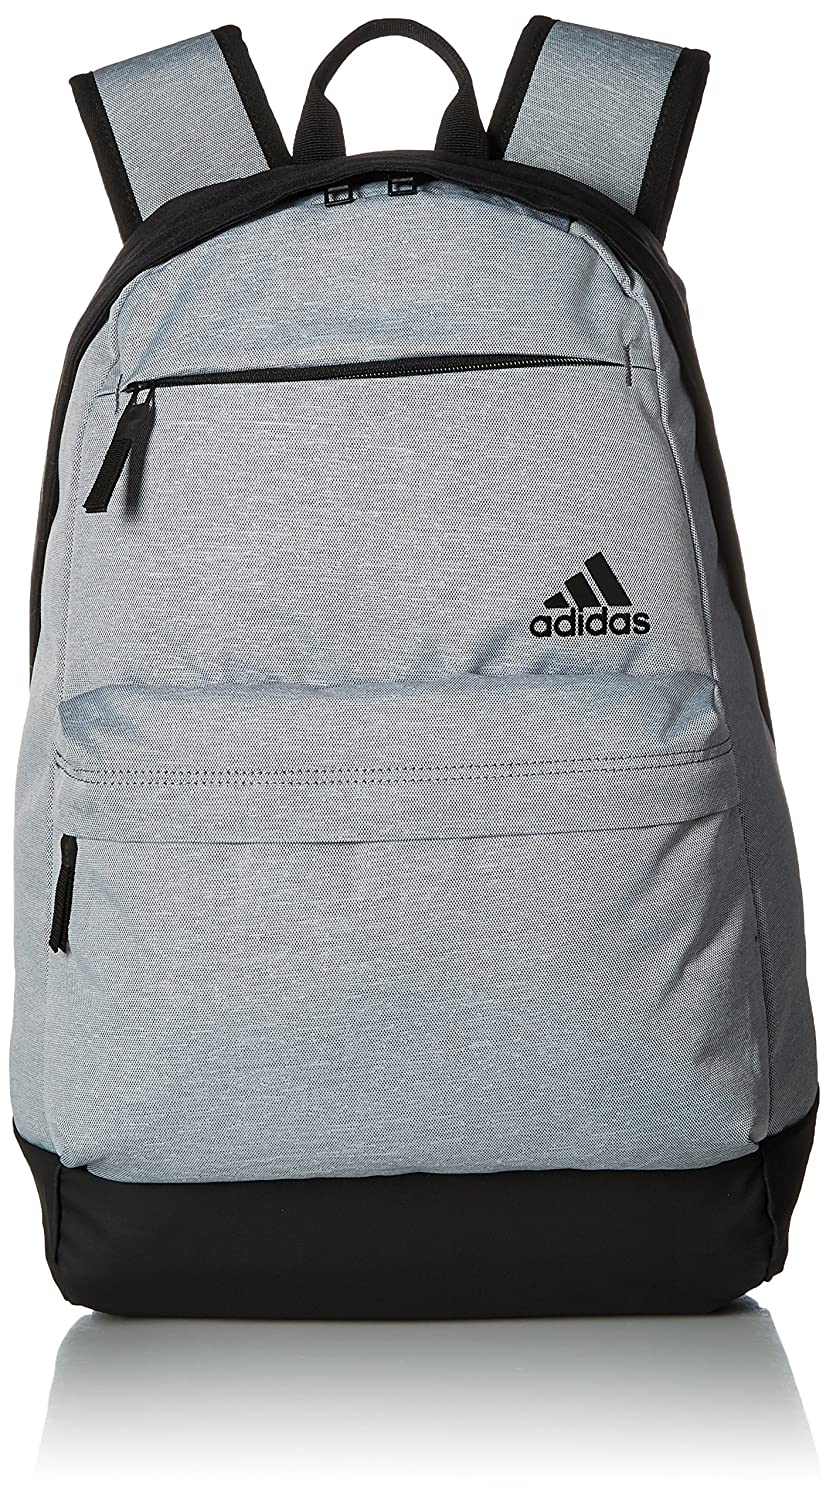 1a9739a4aec Amazon.com  adidas Daybreak II Backpack, Grey Heather Black, One Size   Sports   Outdoors